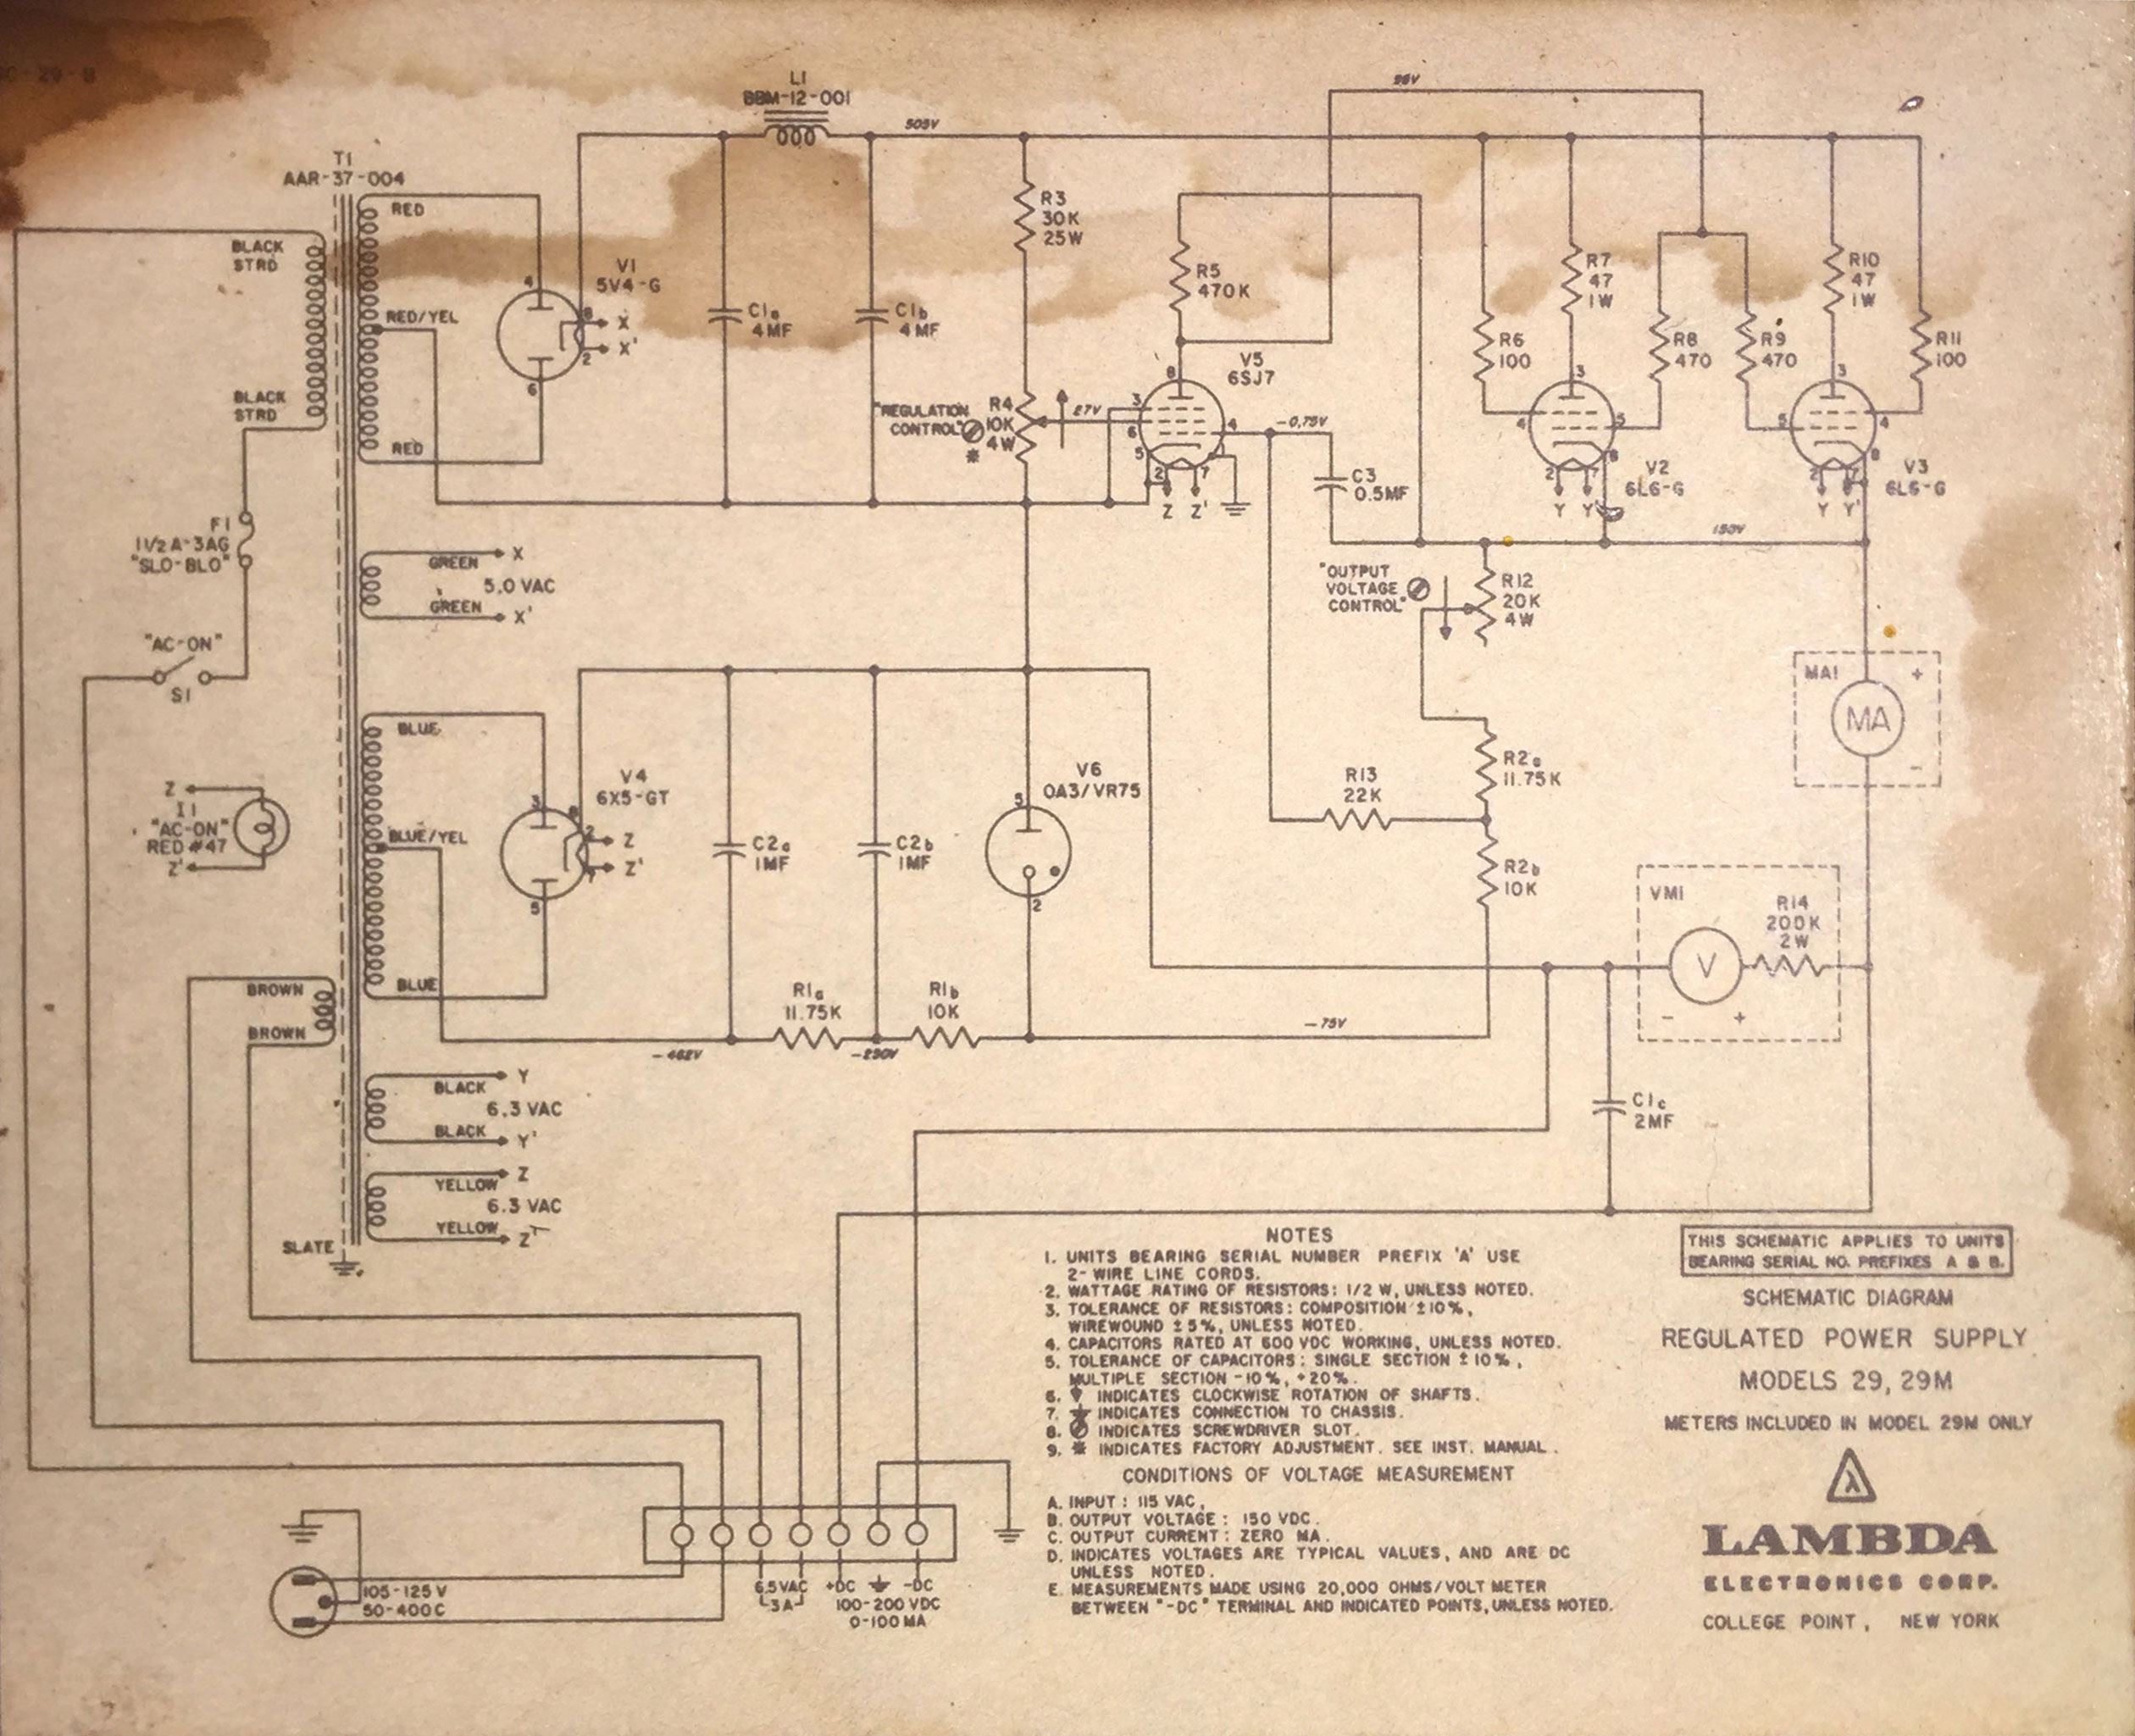 bama schematics with Manuals on Hp8405a additionally pressed Trace On A Tektronix 465m additionally Leader Ltc 905 Manual likewise Lostvino weebly together with What The Fence Around Toomers Corner Looks Like.